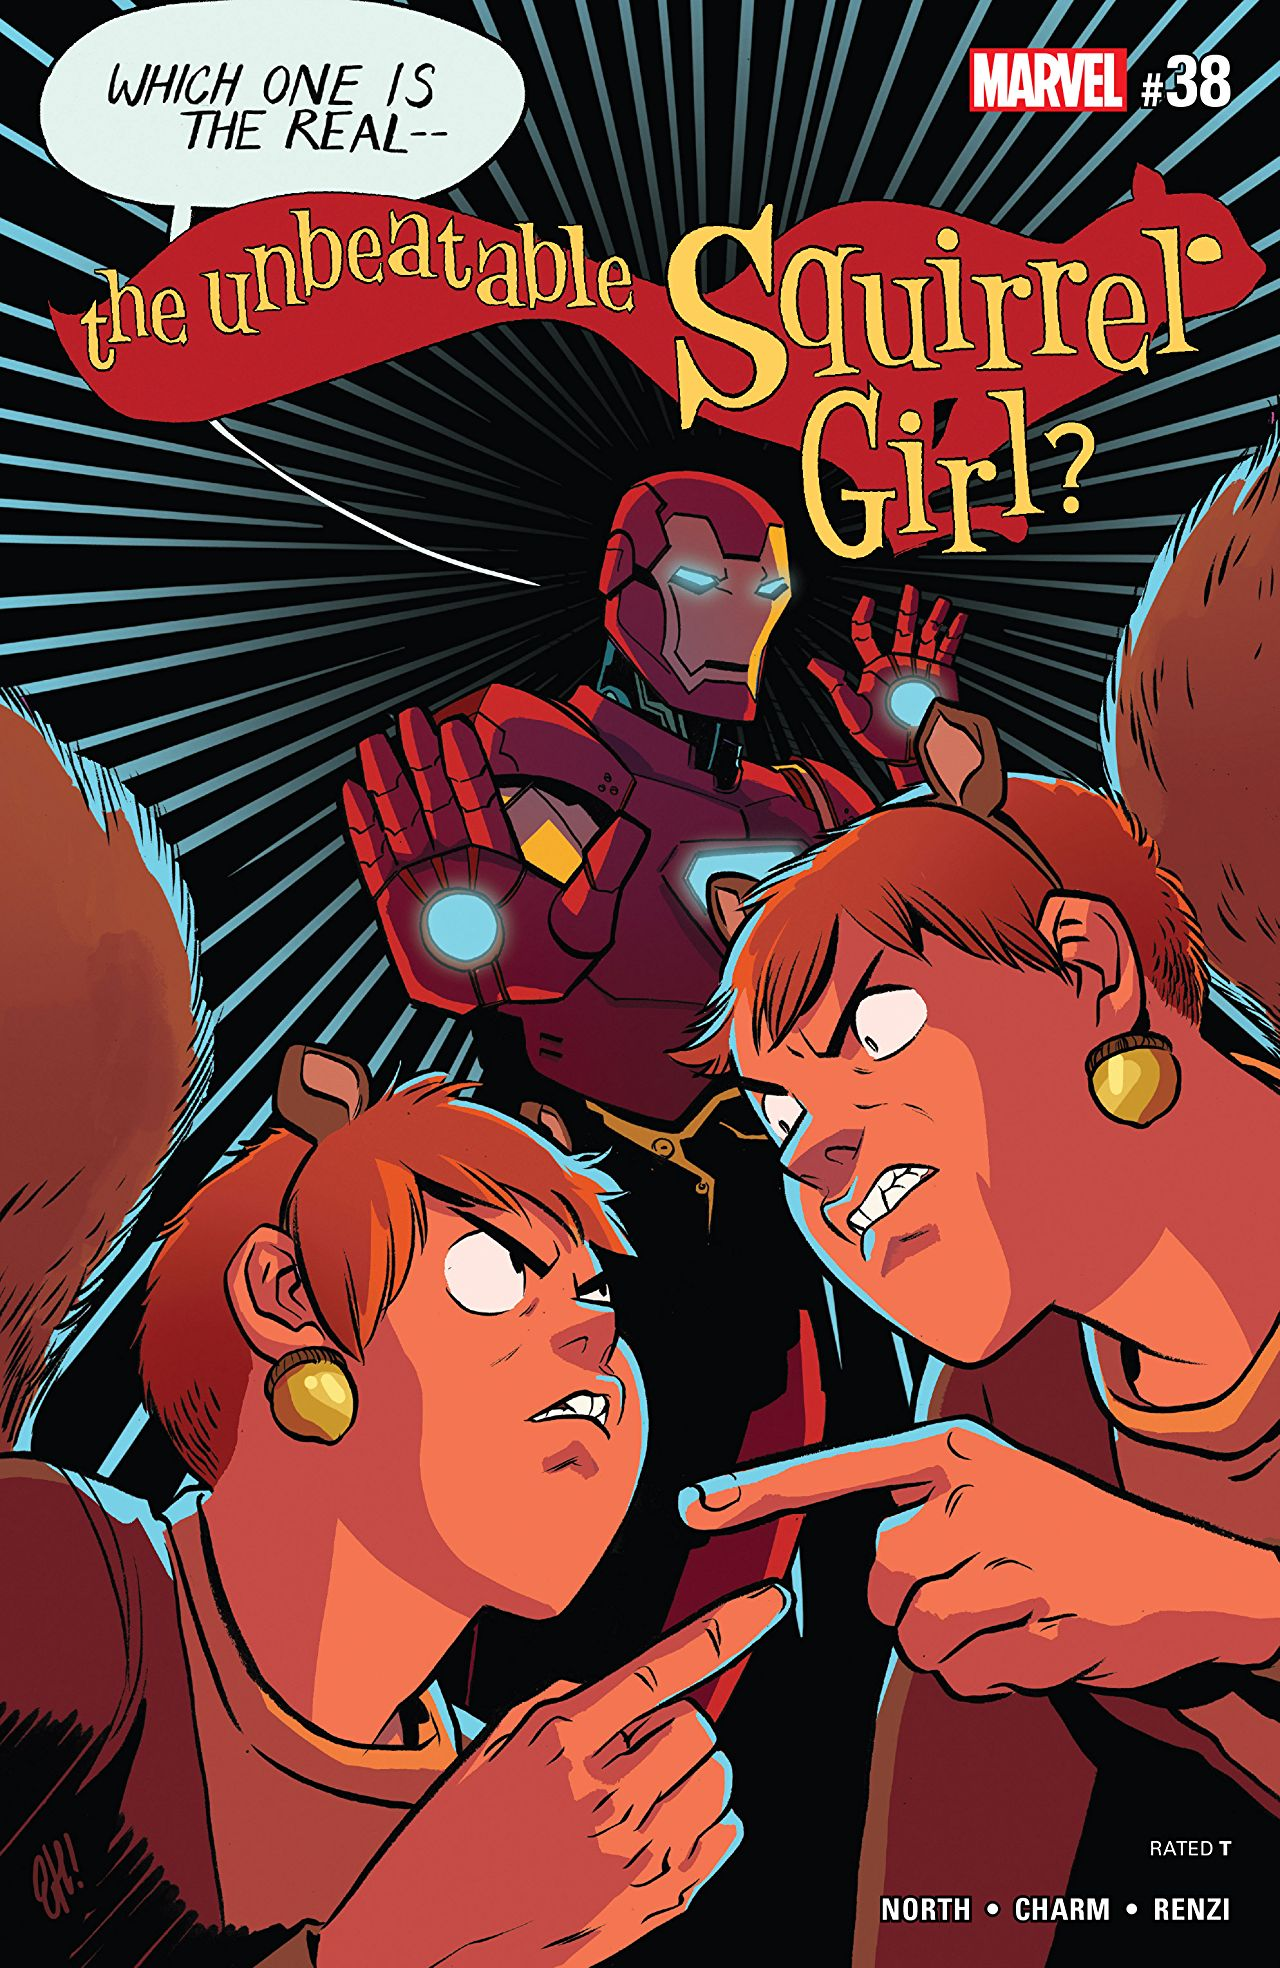 Unbeatable Squirrel Girl remains one of the most enjoyable comics on the shelf.